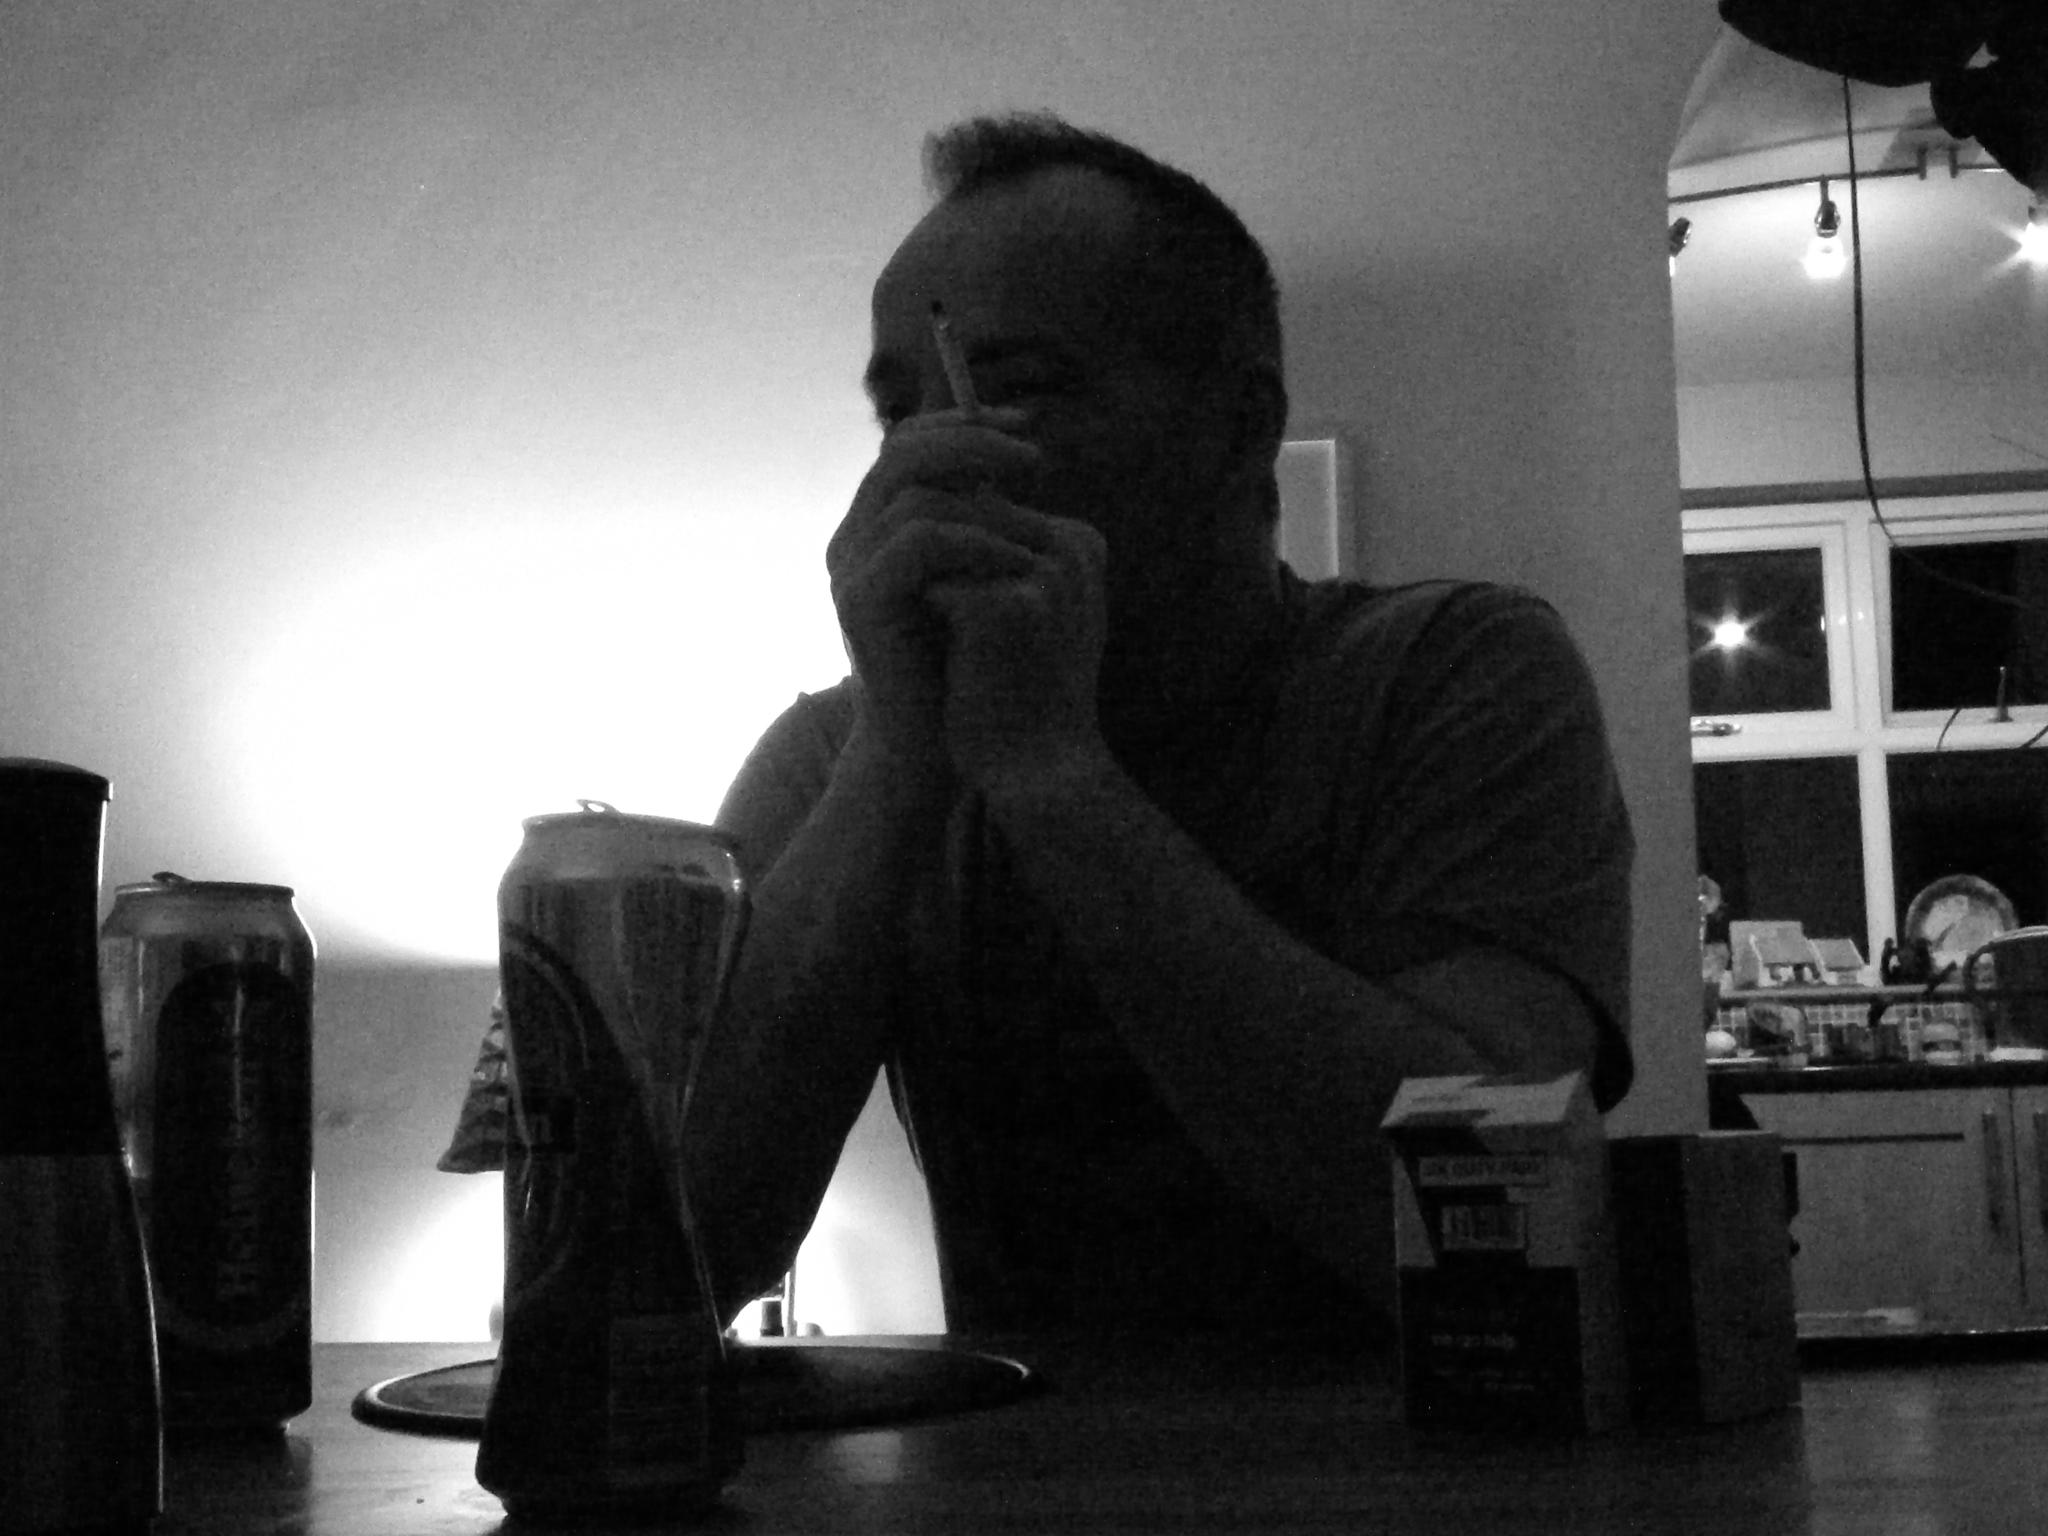 Ted, Fags and Beer by andy.morrow.315